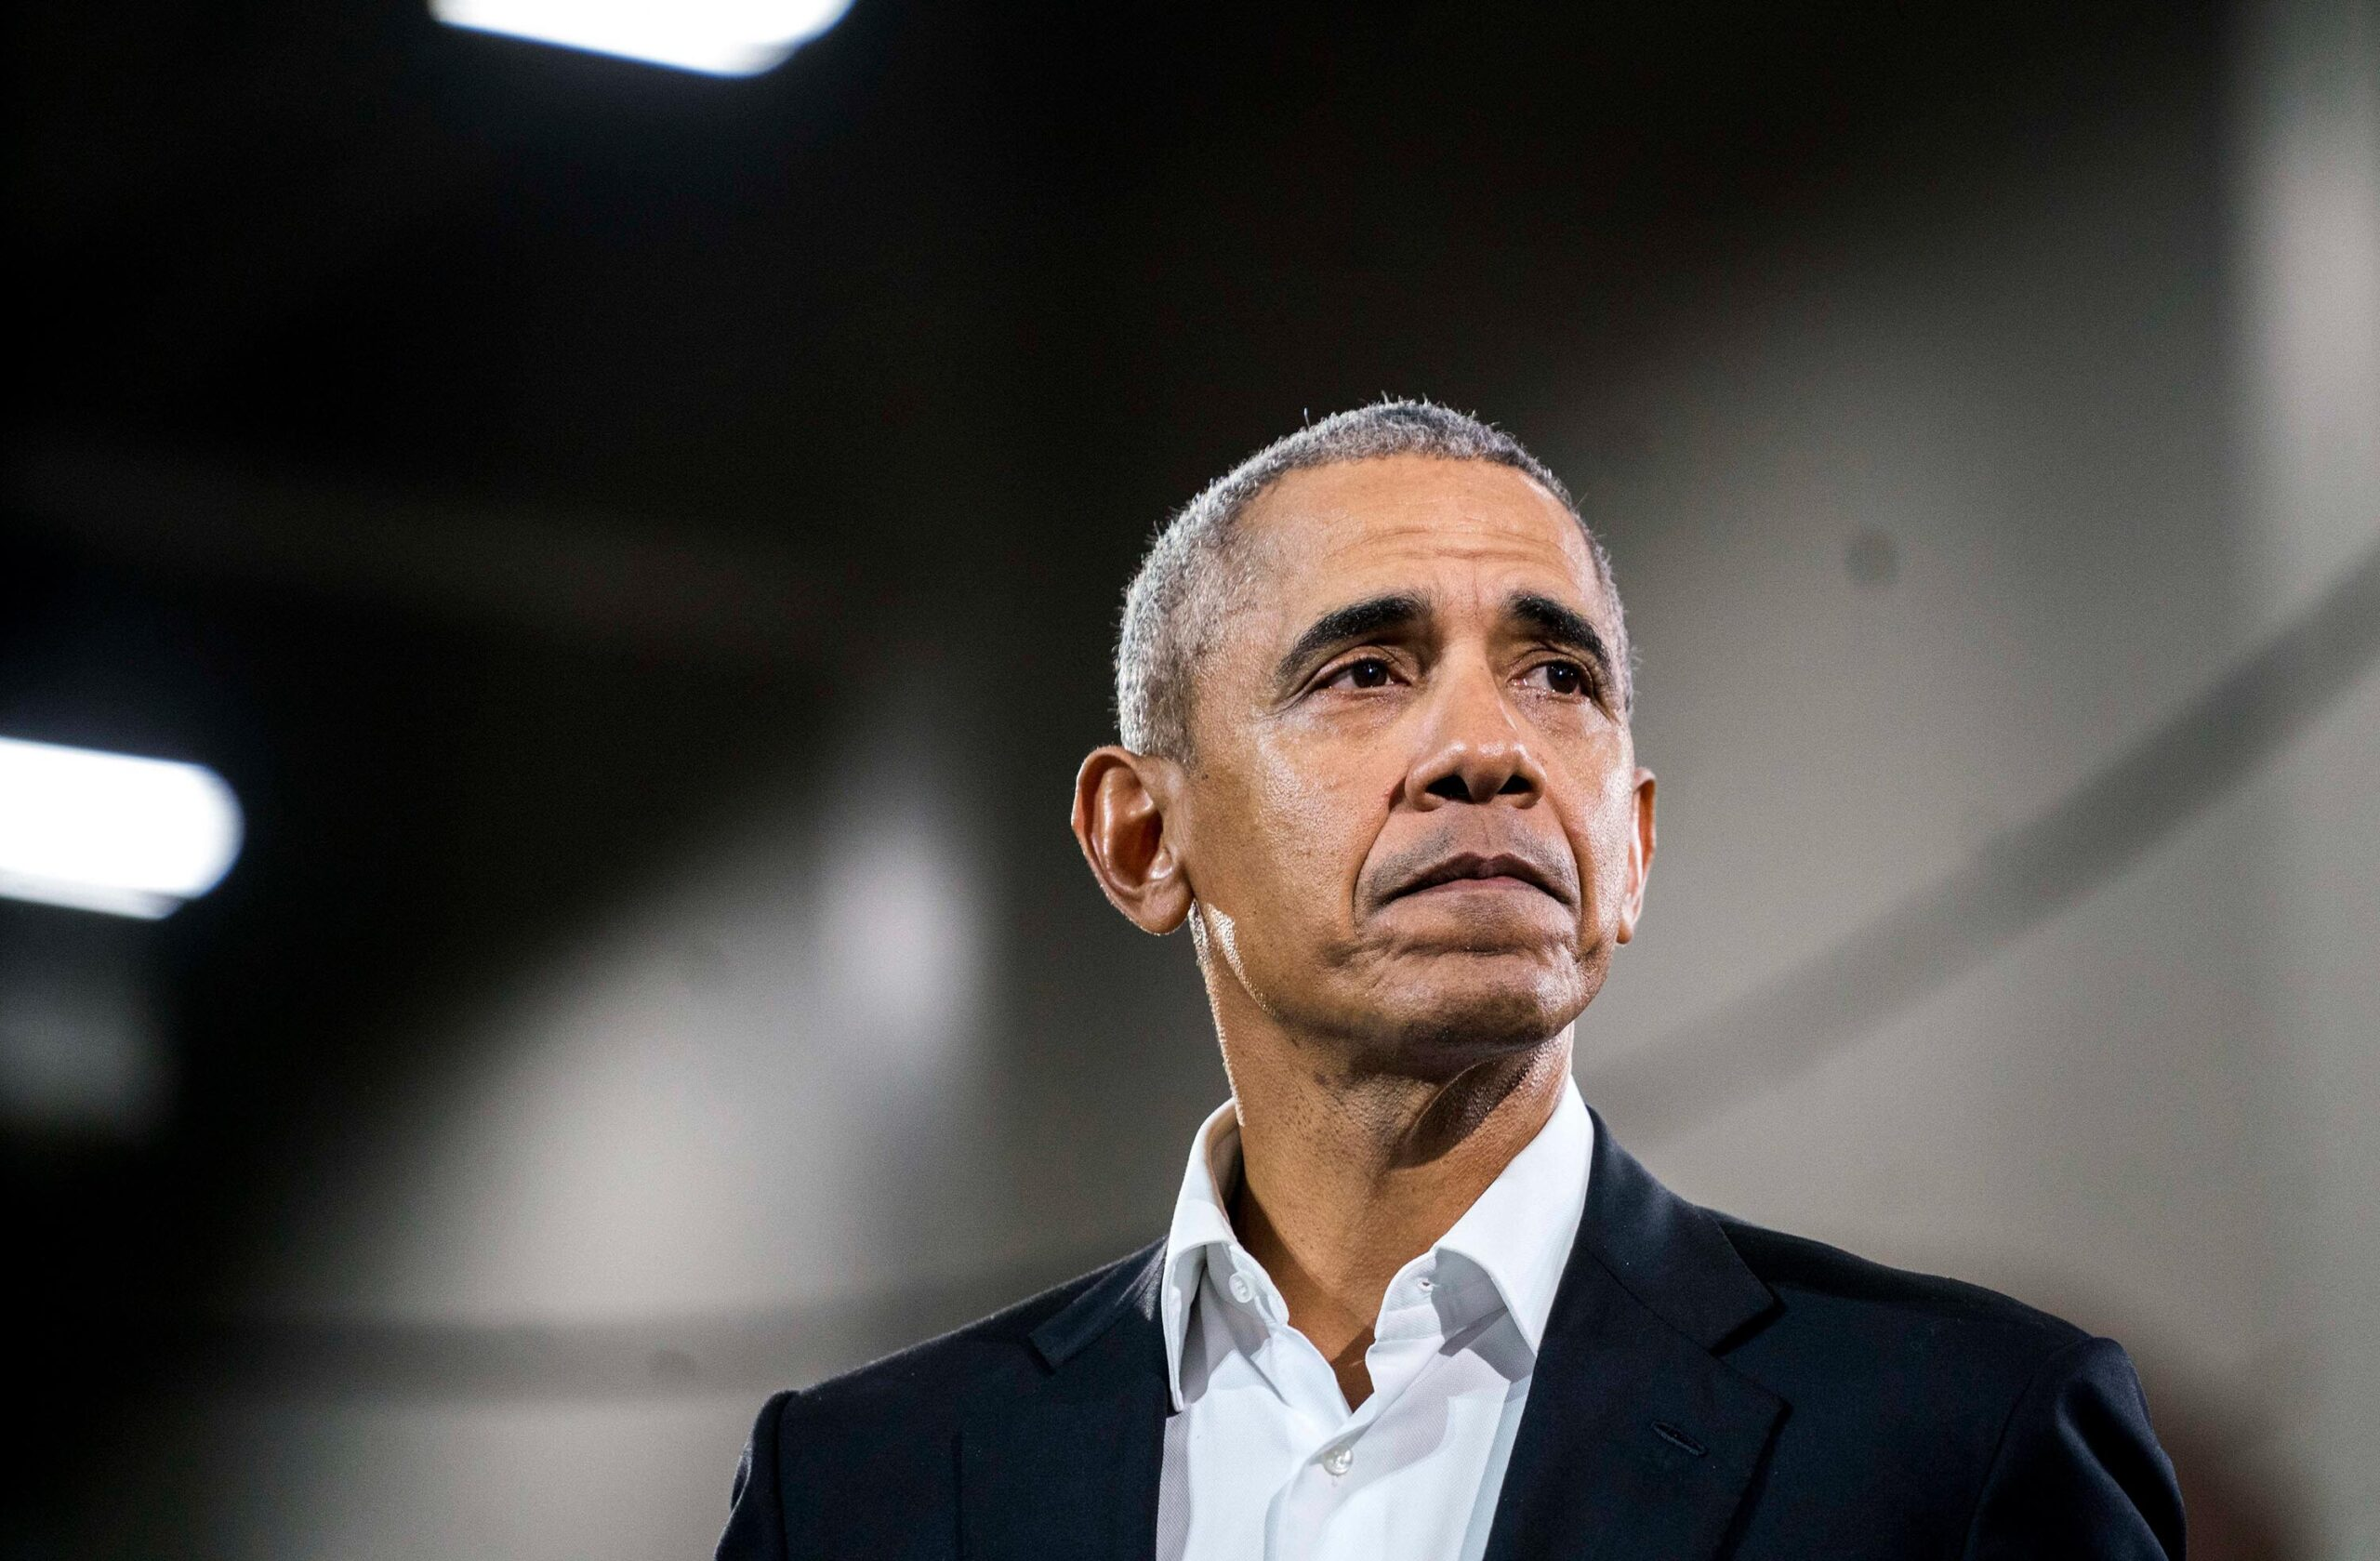 <i>Melina Mara/The Washington Post/Getty Images</i><br/>Former President Barack Obama will invite alumni from his presidential campaigns and administration for a livestreamed conversation hosted by David Plouffe